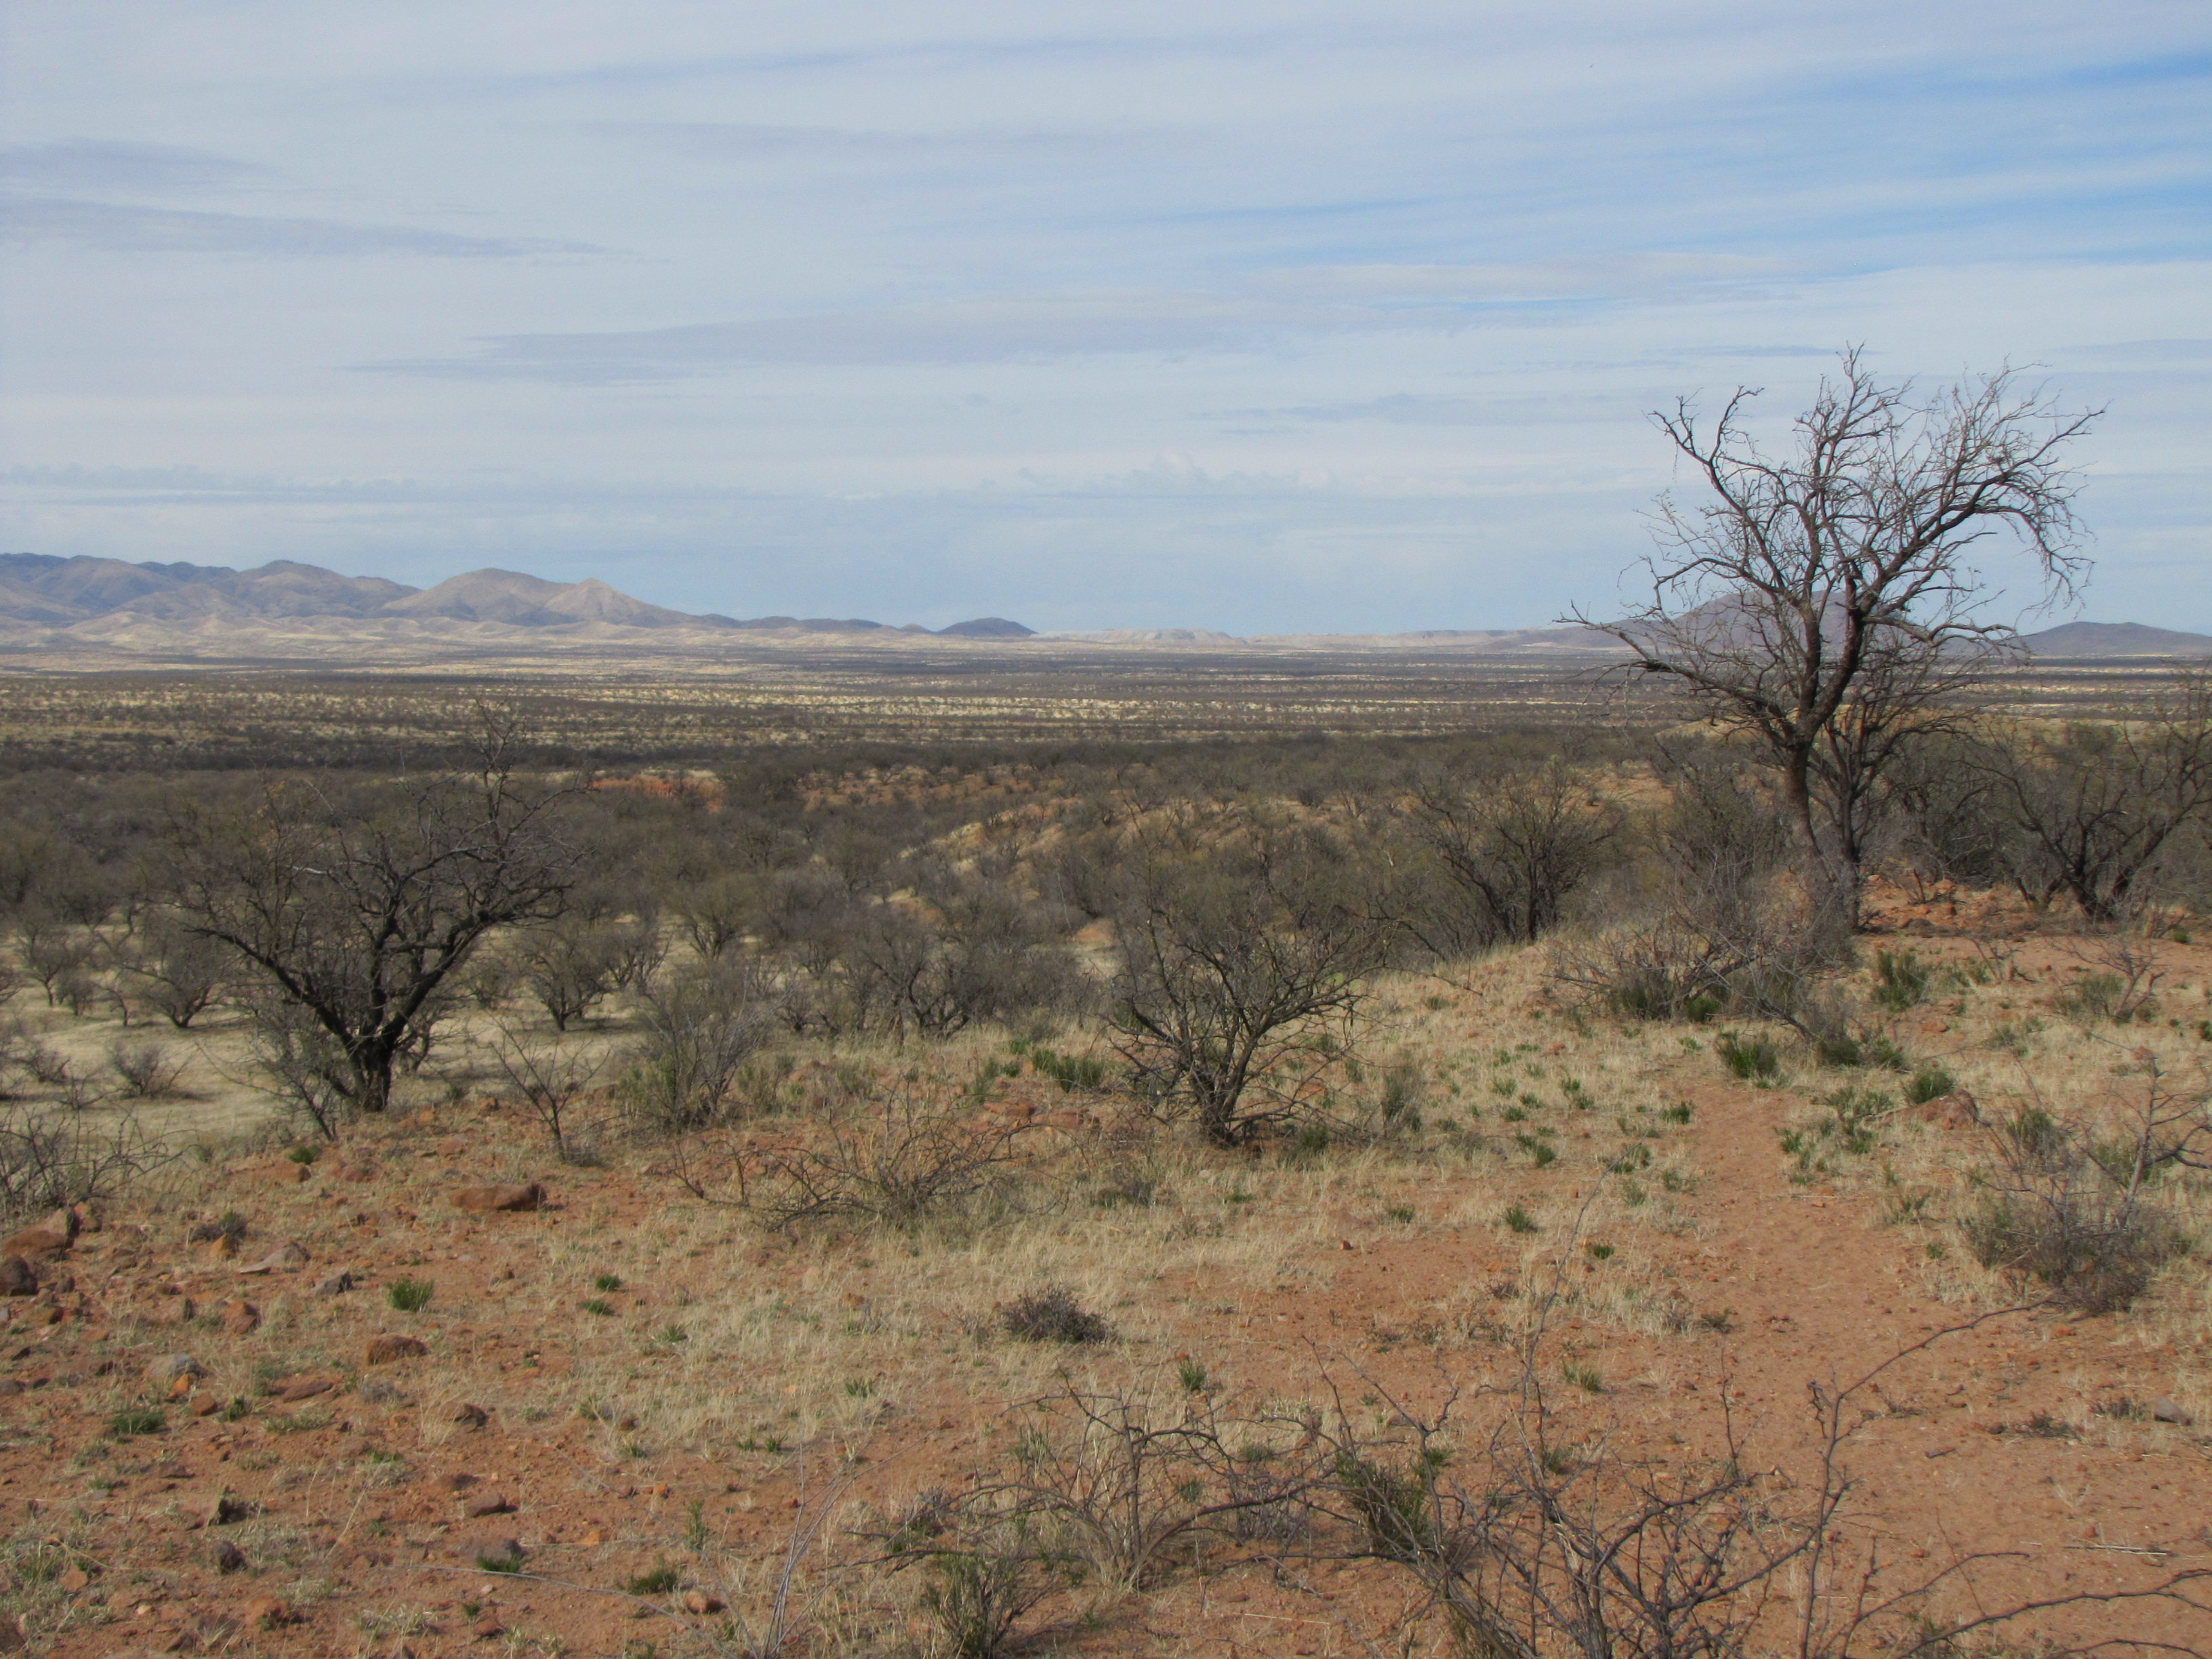 A 14-year-old was raped last winter in this remote spot east of Arivaca, Ariz. Photo by Jude Joffe-Block/Fronteras Desk